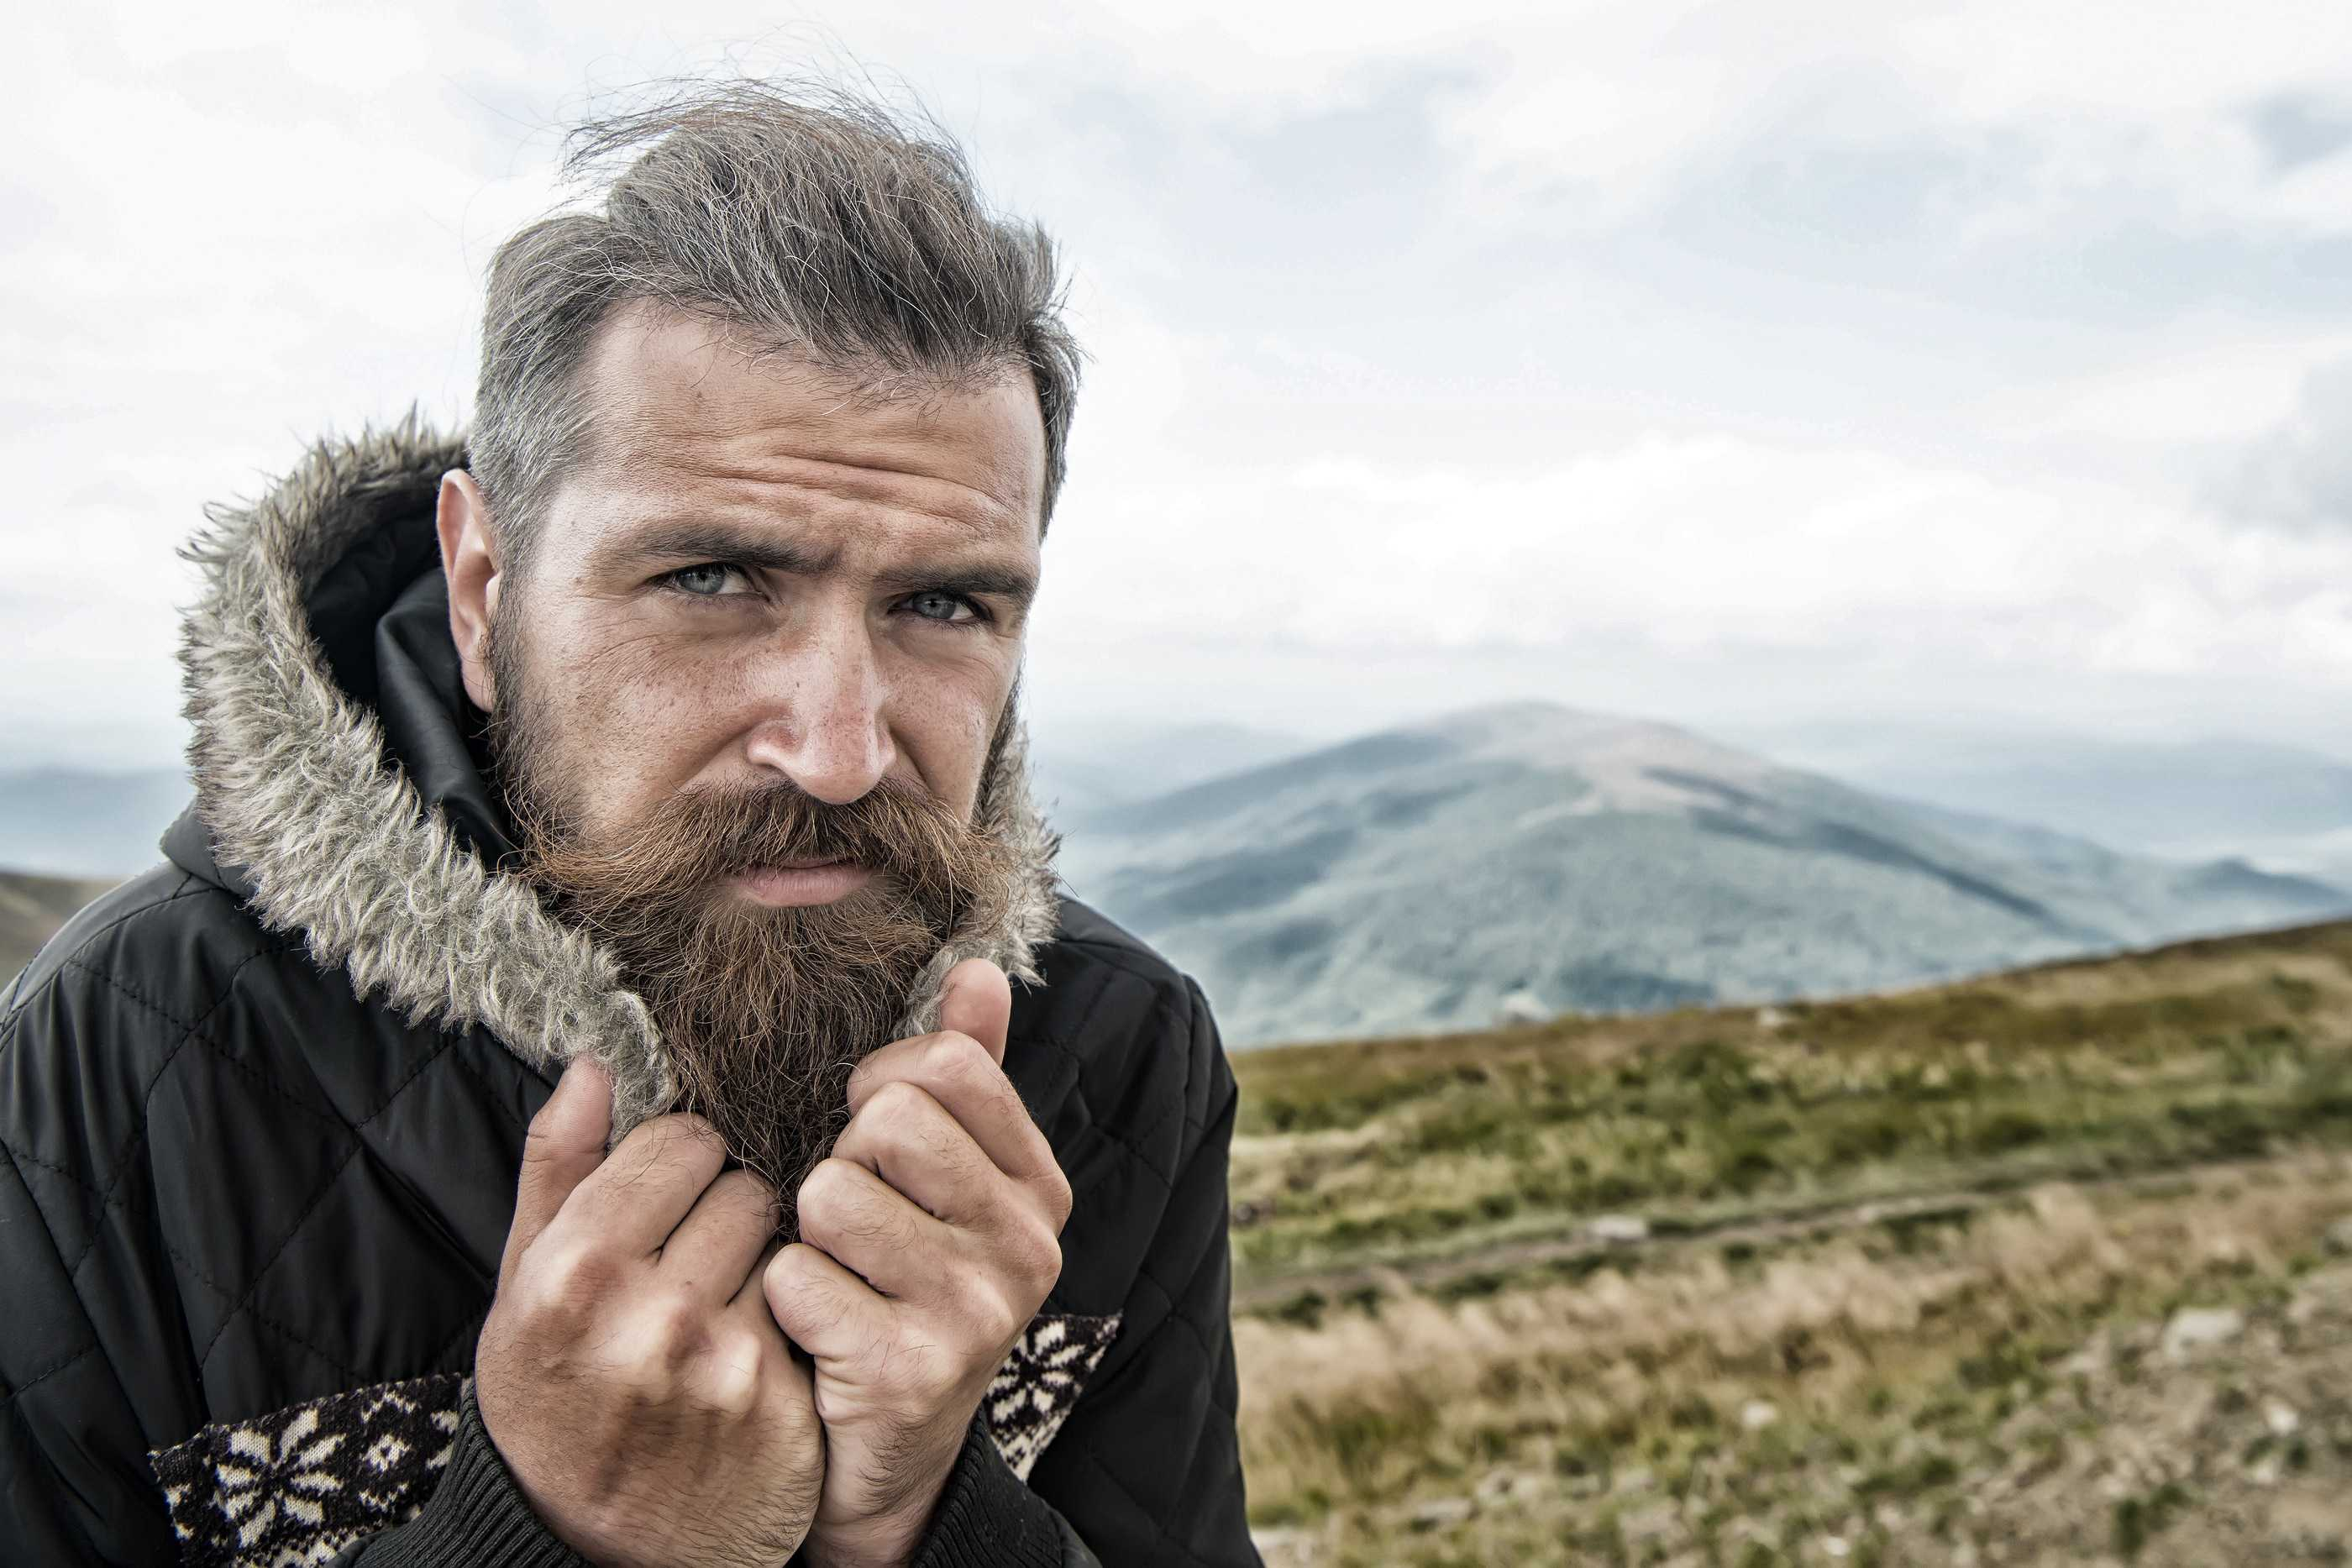 Hipster with serious face at mountains. Guy or bearded man at cold weather.